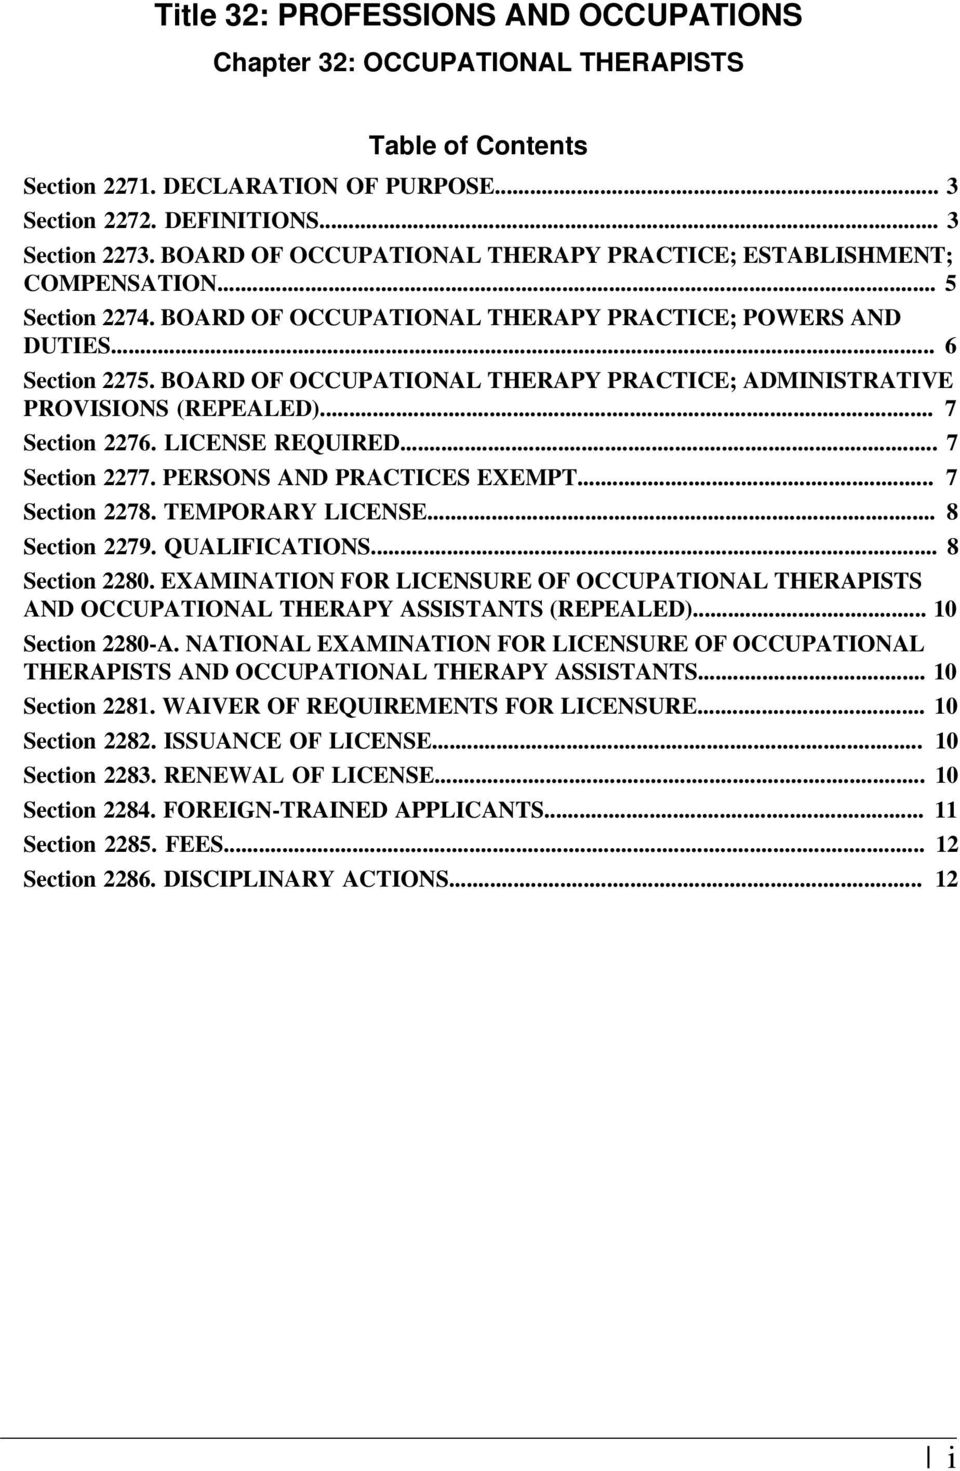 BOARD OF OCCUPATIONAL THERAPY PRACTICE; ADMINISTRATIVE PROVISIONS (REPEALED)... 7 Section 2276. LICENSE REQUIRED... 7 Section 2277. PERSONS AND PRACTICES EXEMPT... 7 Section 2278. TEMPORARY LICENSE.